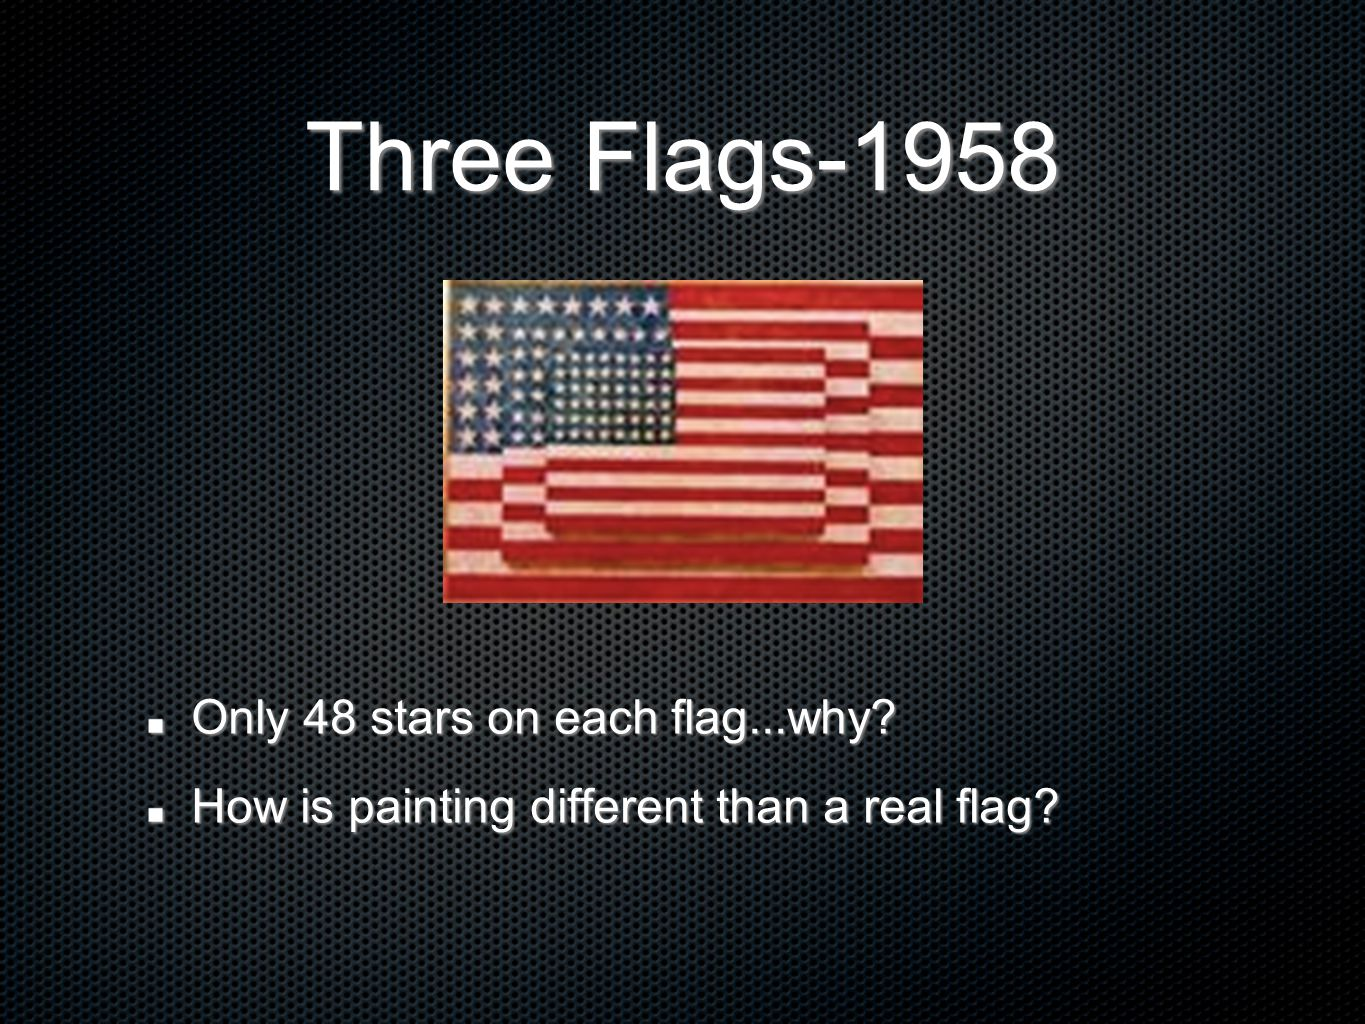 Three Flags-1958 Only 48 stars on each flag...why